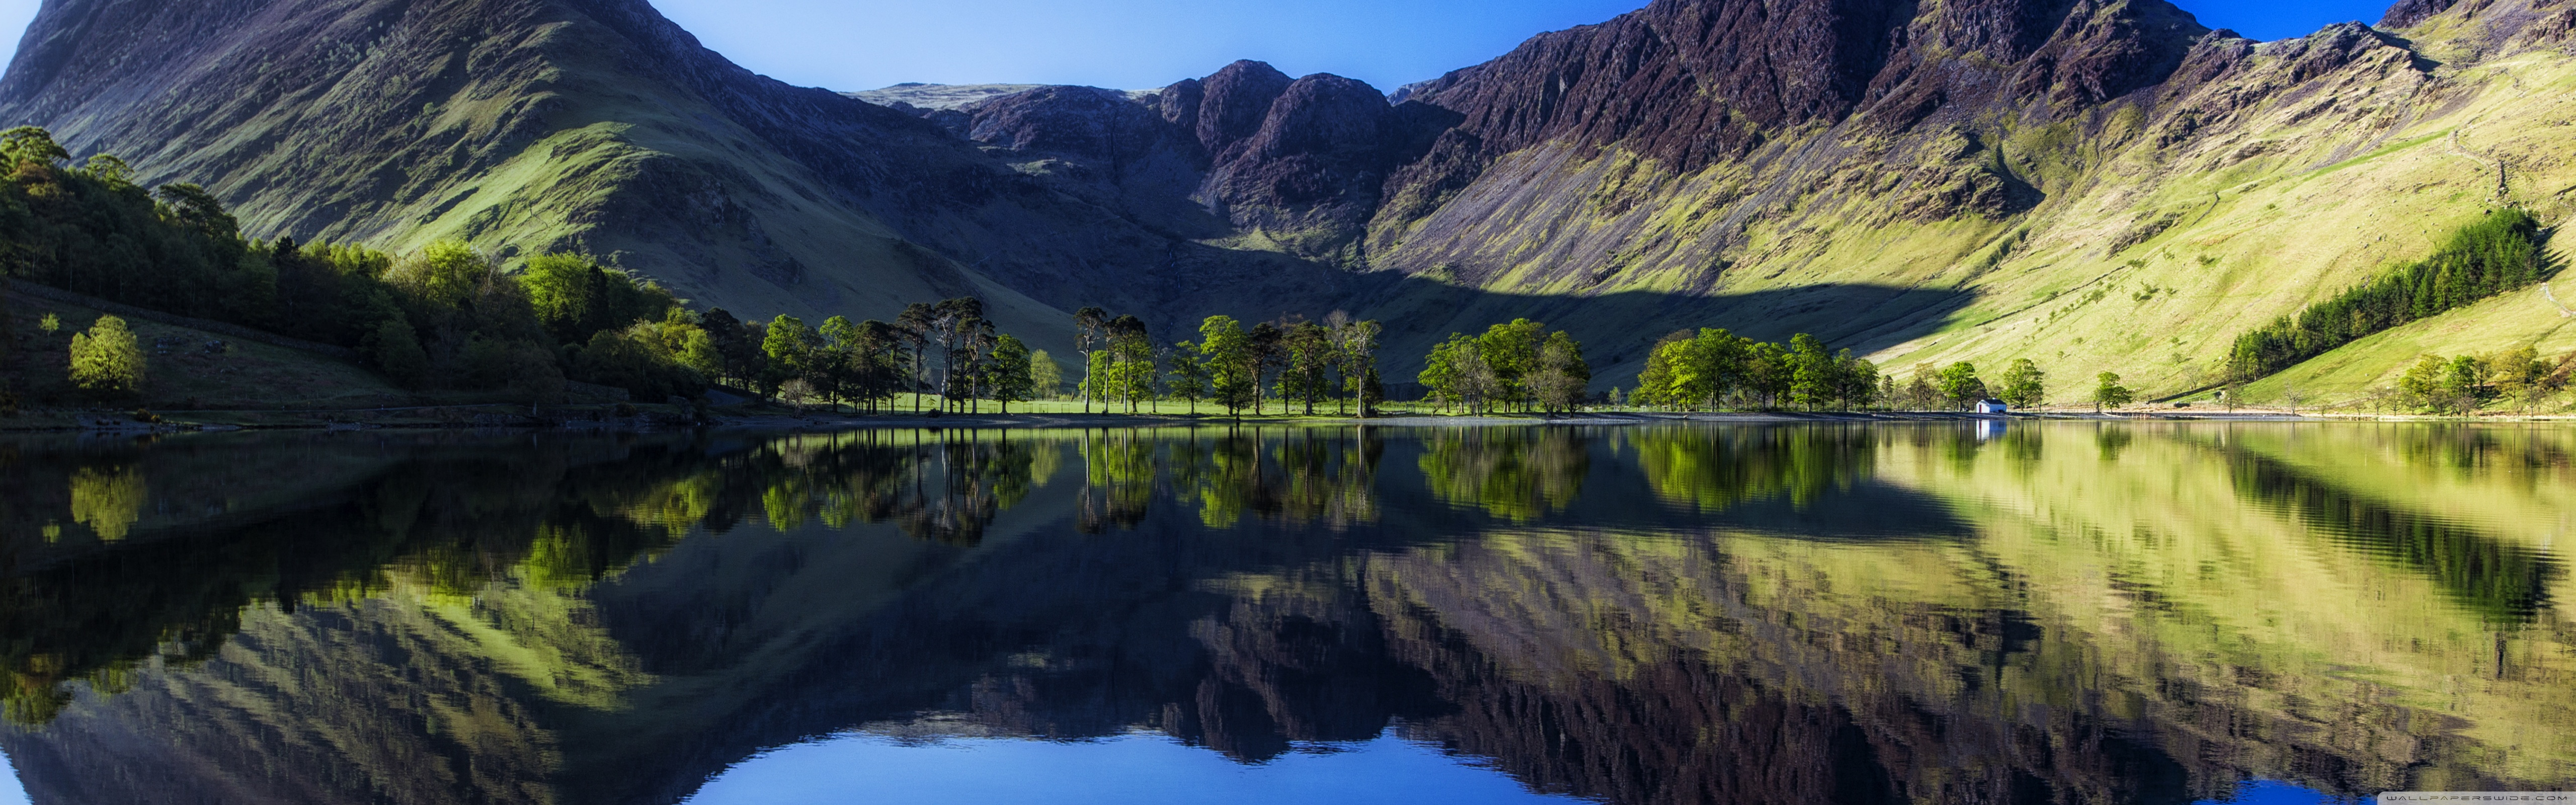 Buttermere Lake District England 4K HD Desktop Wallpaper for 5120x1600